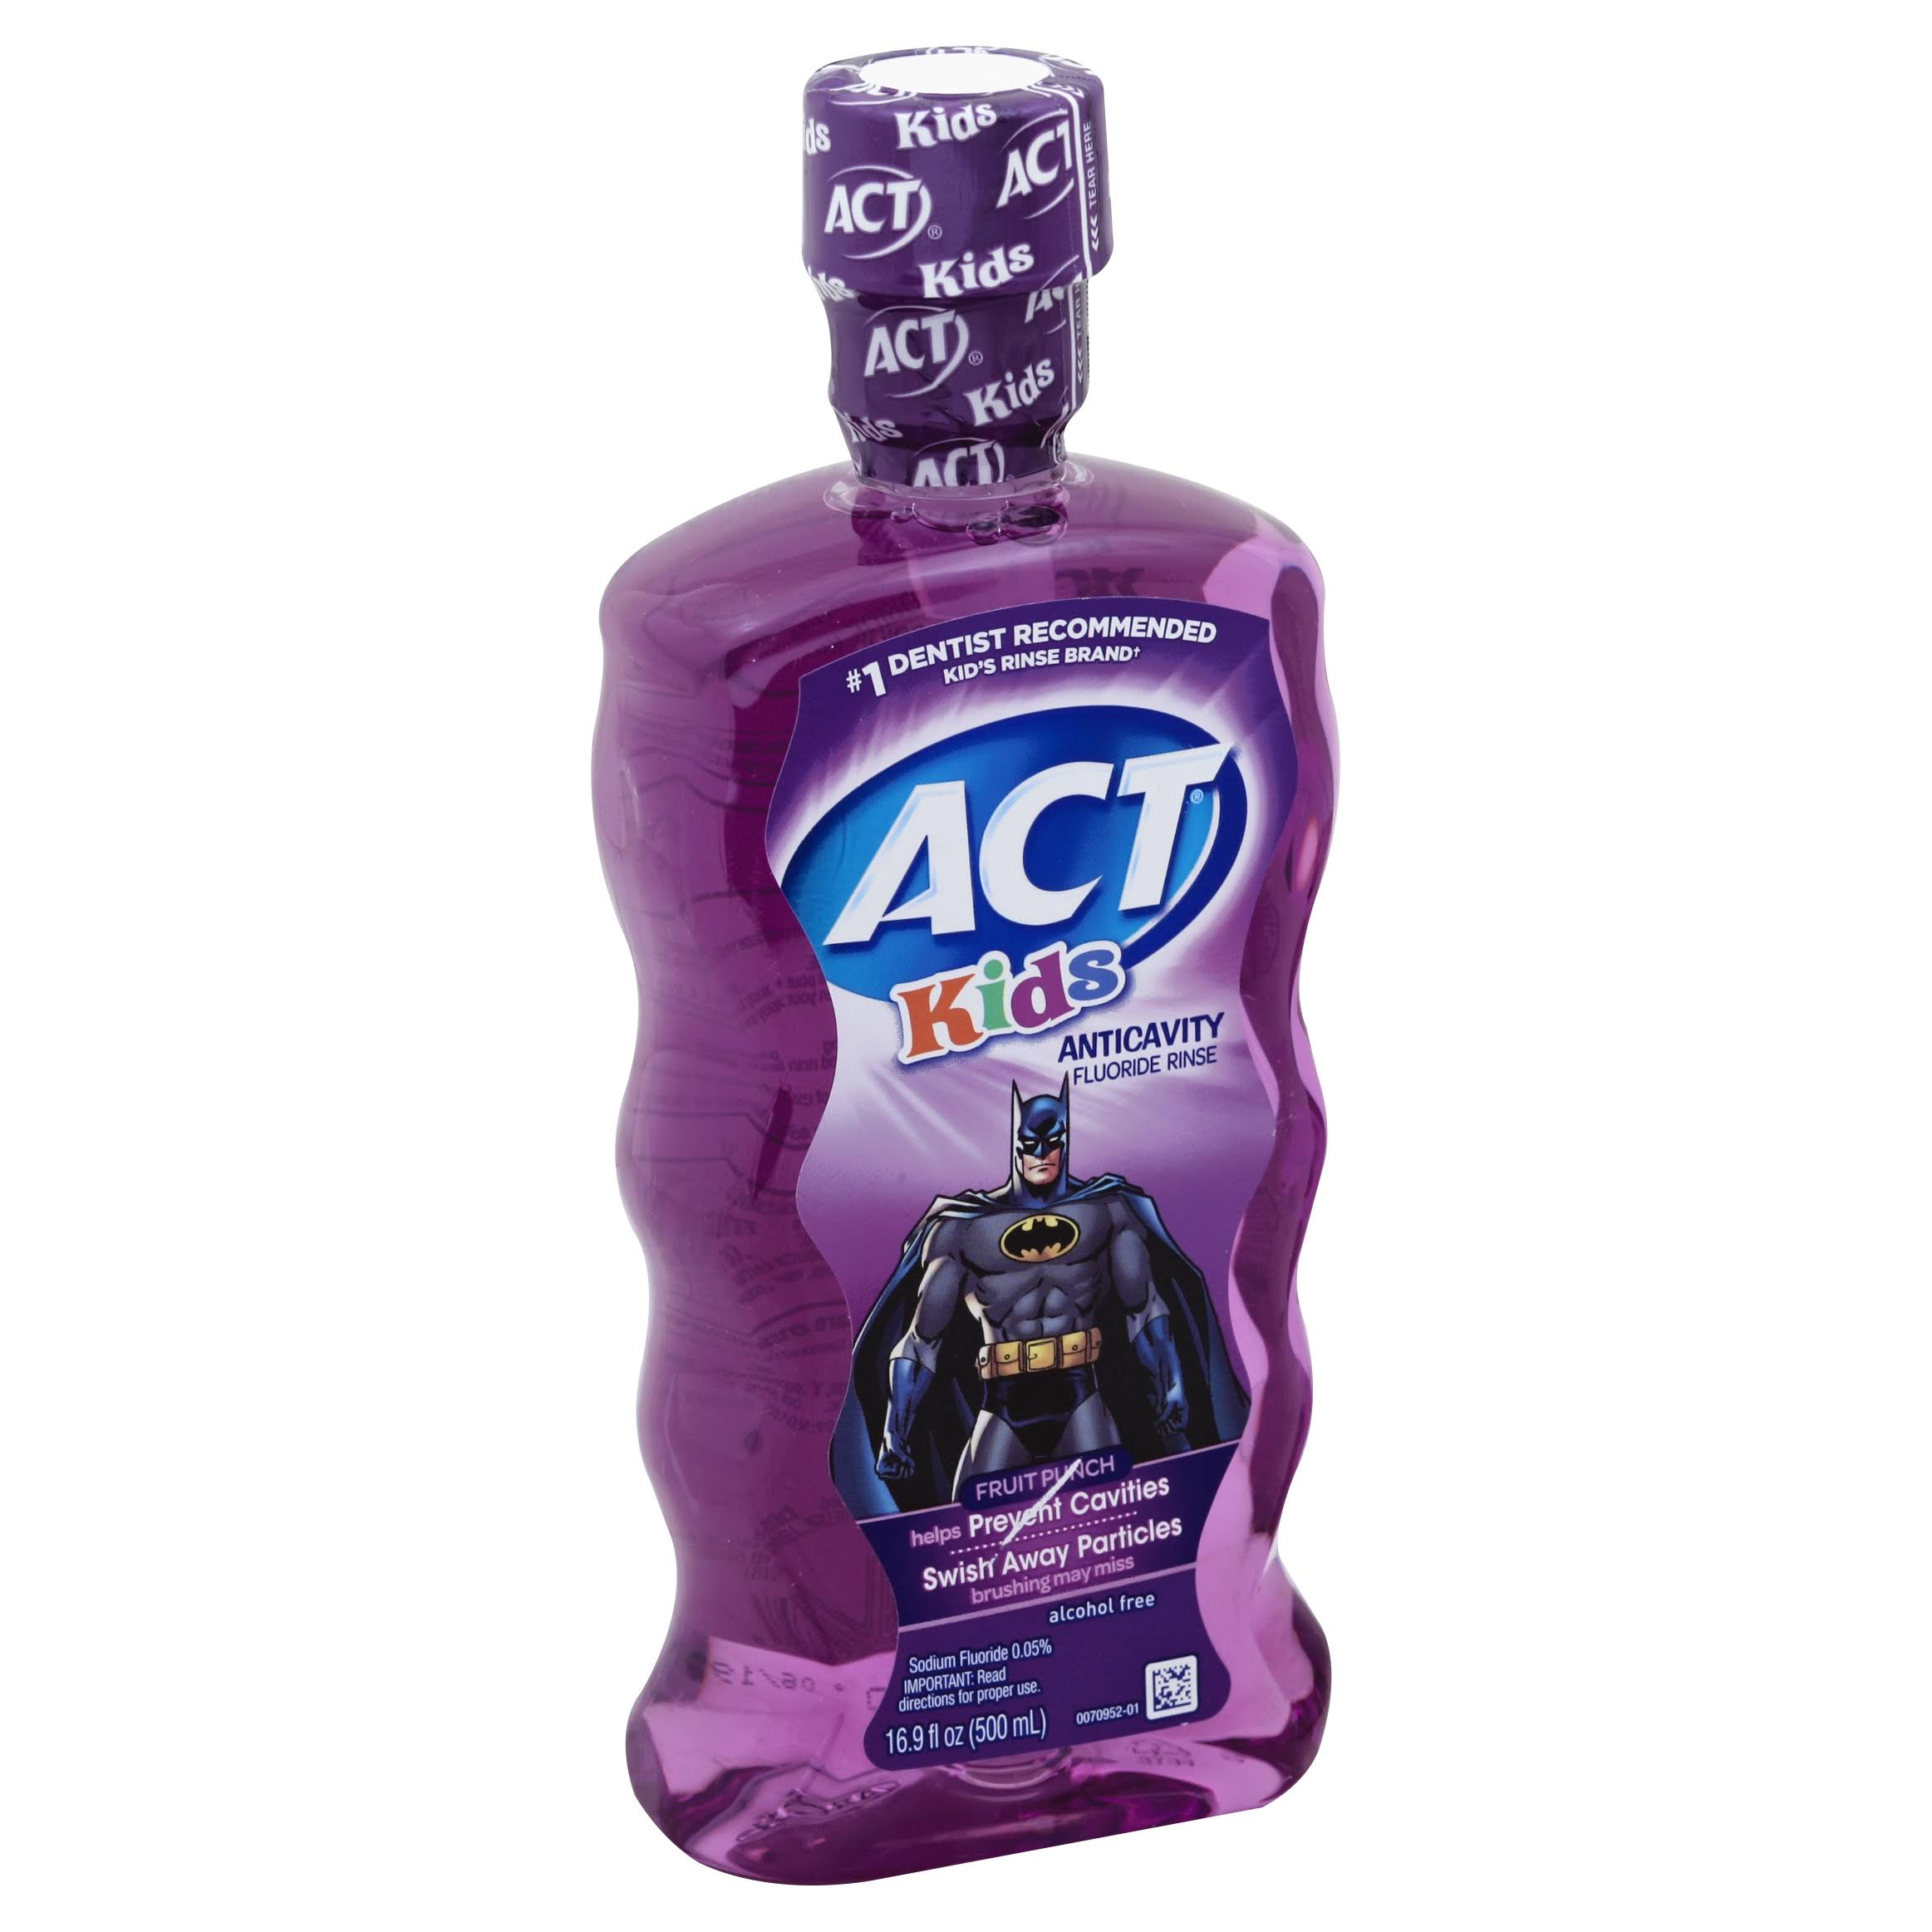 ACT Kids Anticavity Fluoride Rinse - Fruit Punch, 16.9oz